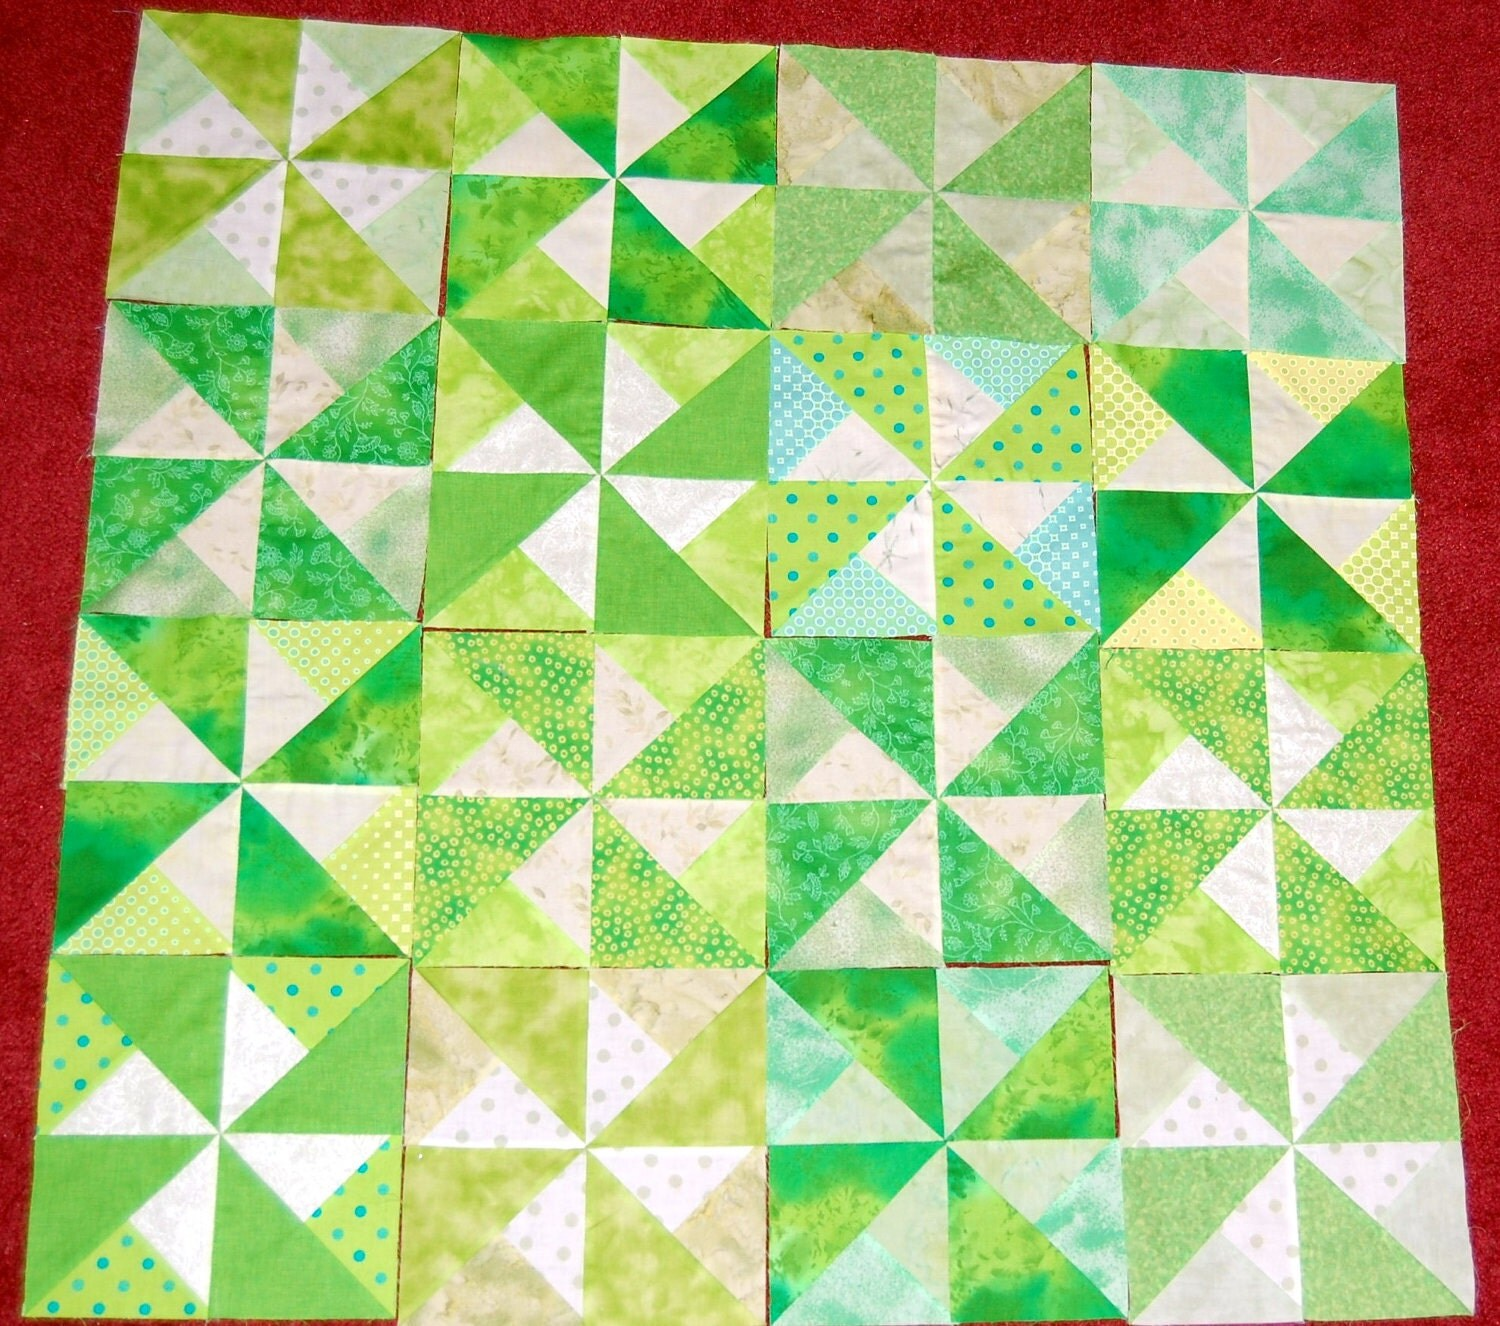 Pinwheel Quilt Block Template : Items similar to Quilt Blocks 8 inch Pinwheel Pattern 16 READY TO SHIP on Etsy